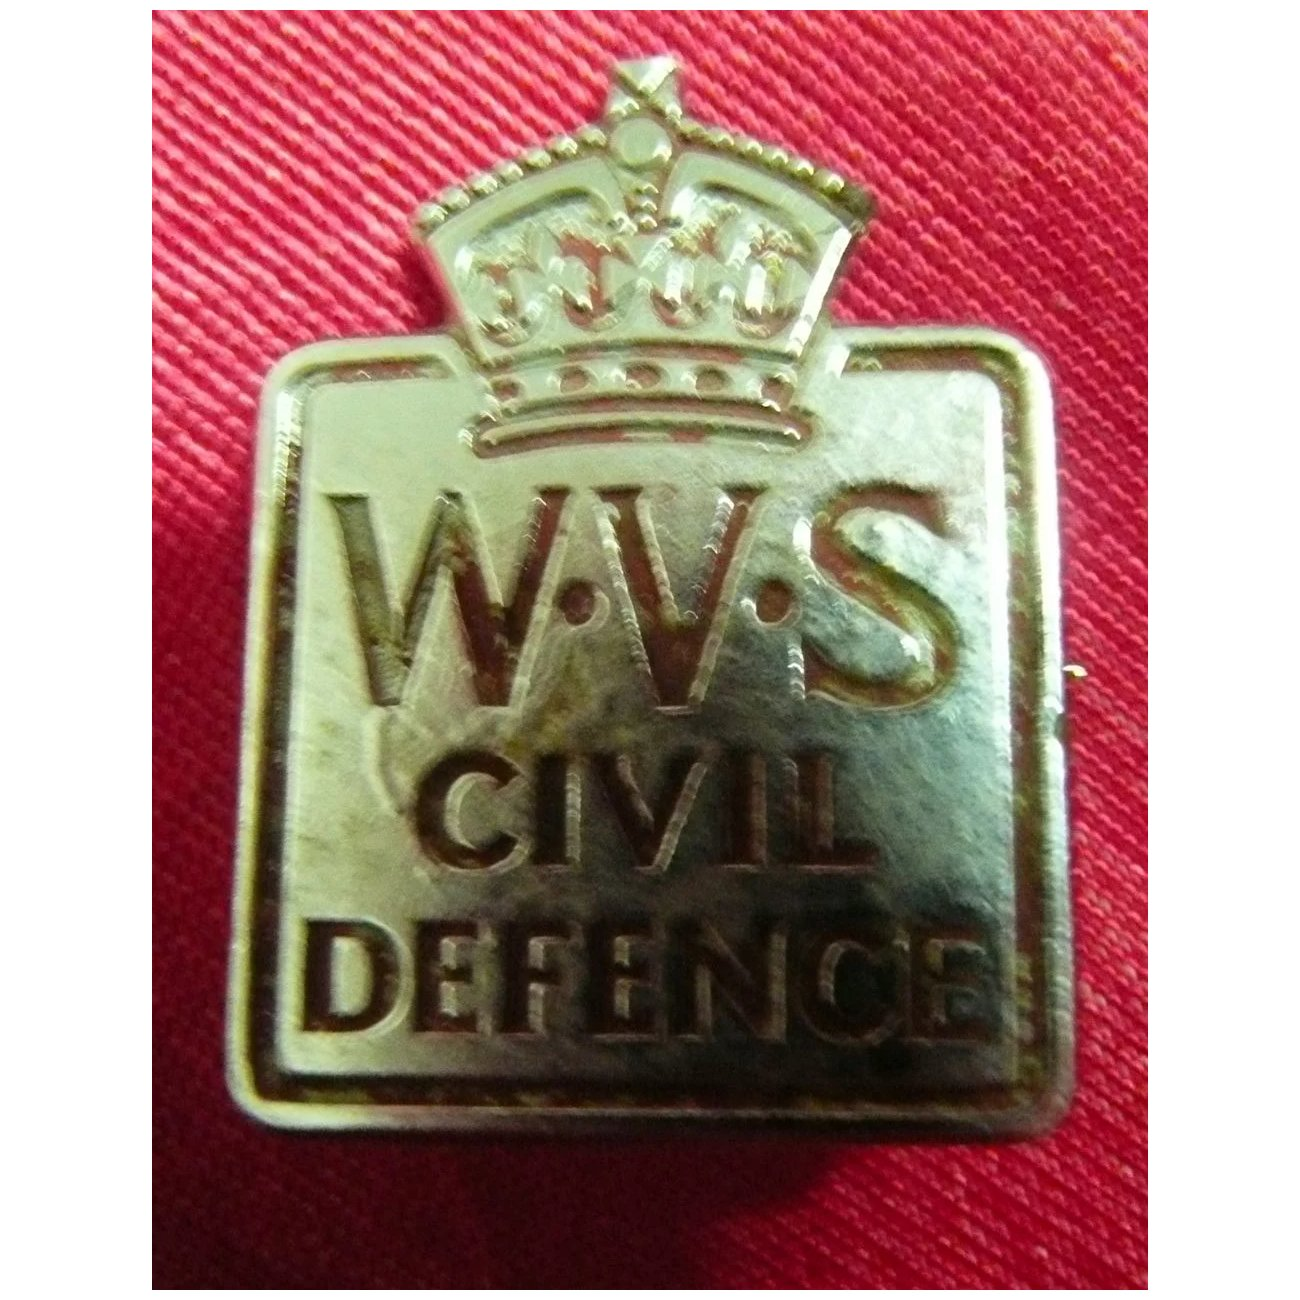 WWII Badge - Women's Voluntary Service for Civil Defense.